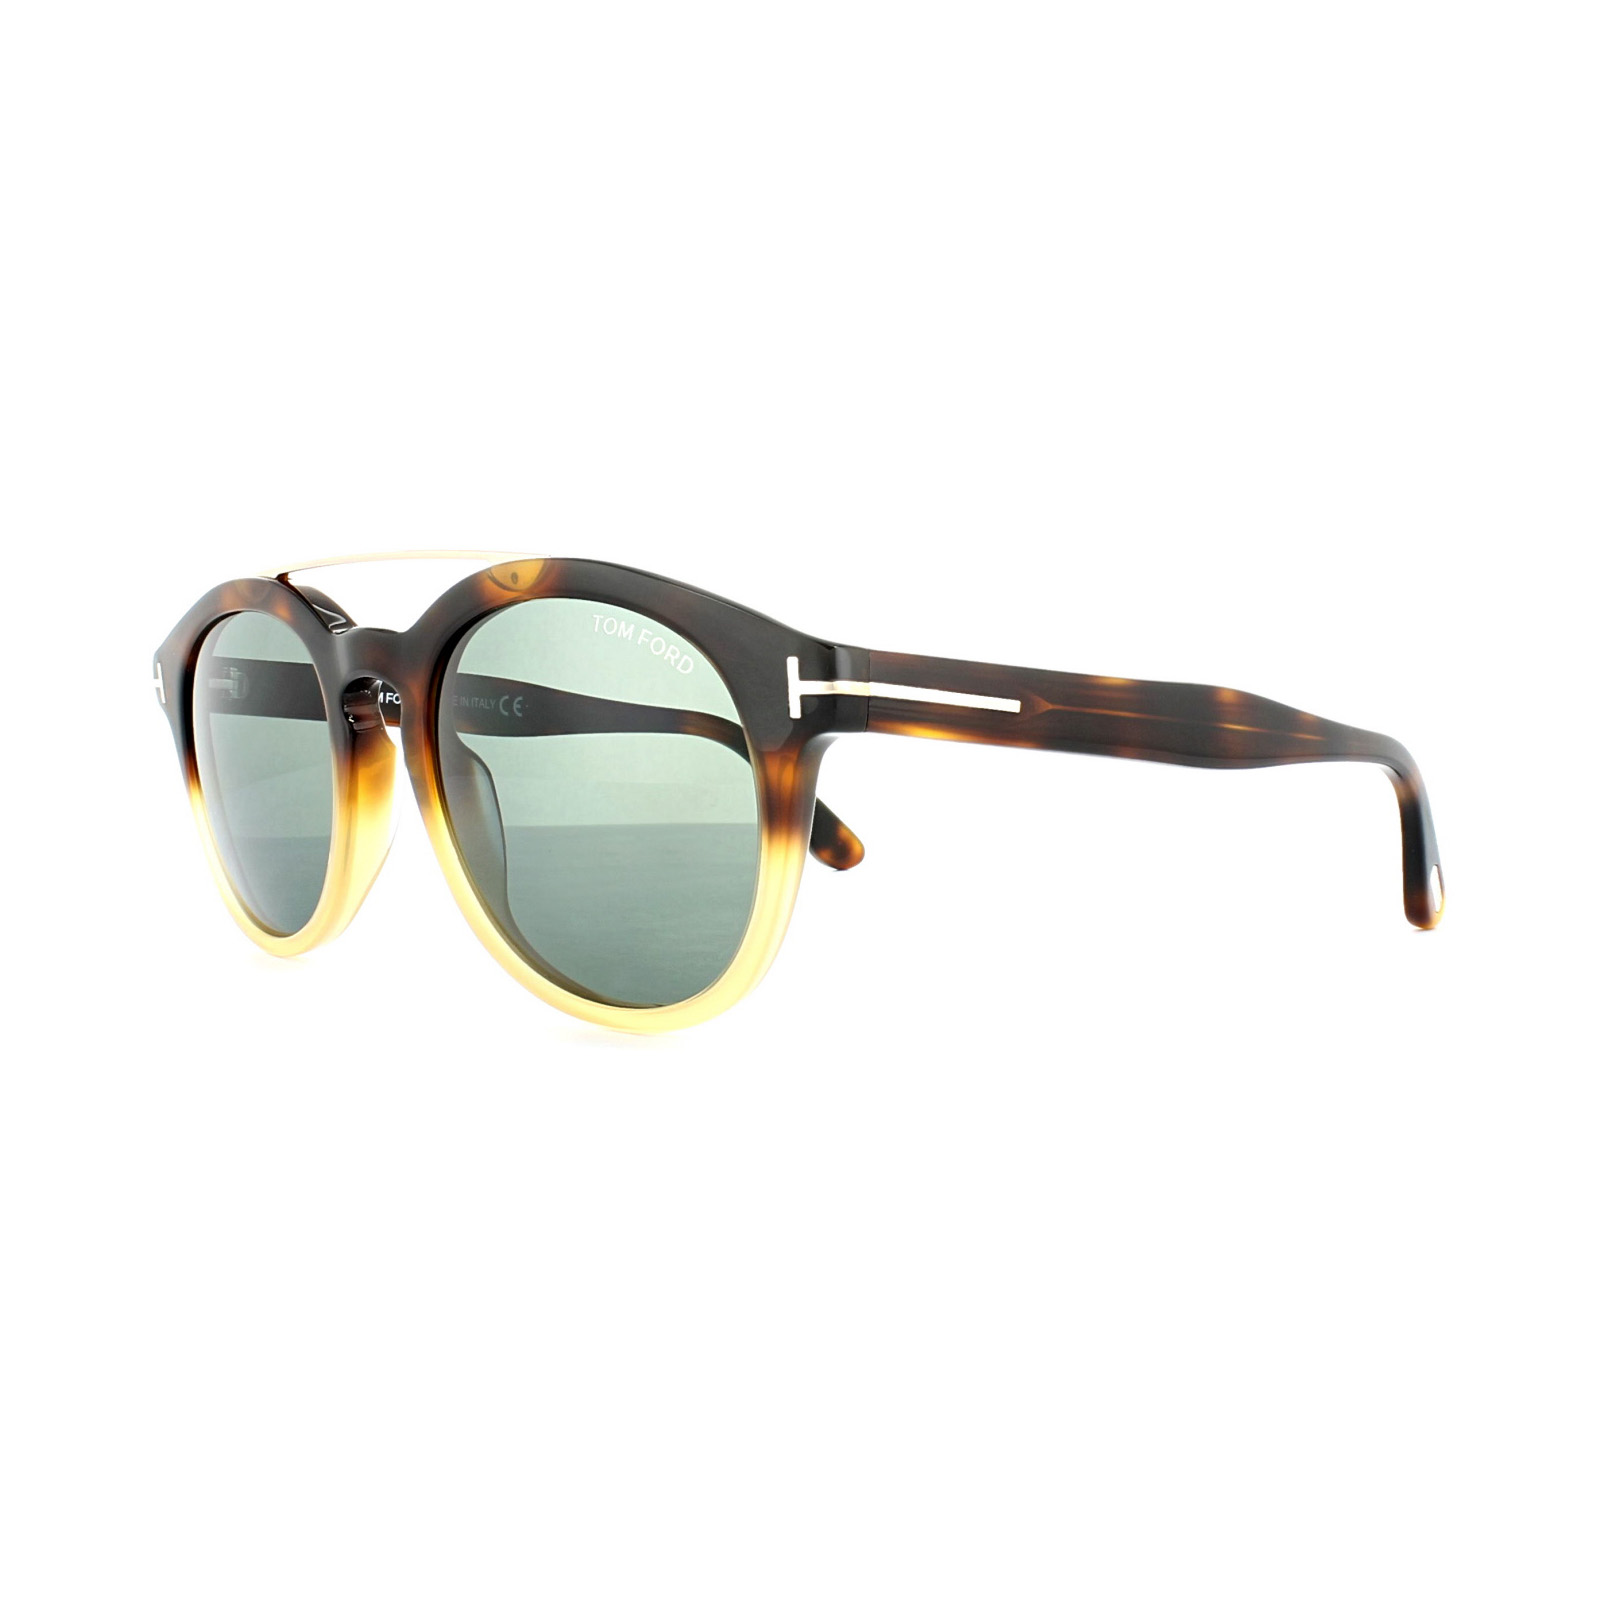 36702394c05 Cheap Tom Ford 0515 Newman Sunglasses - Discounted Sunglasses